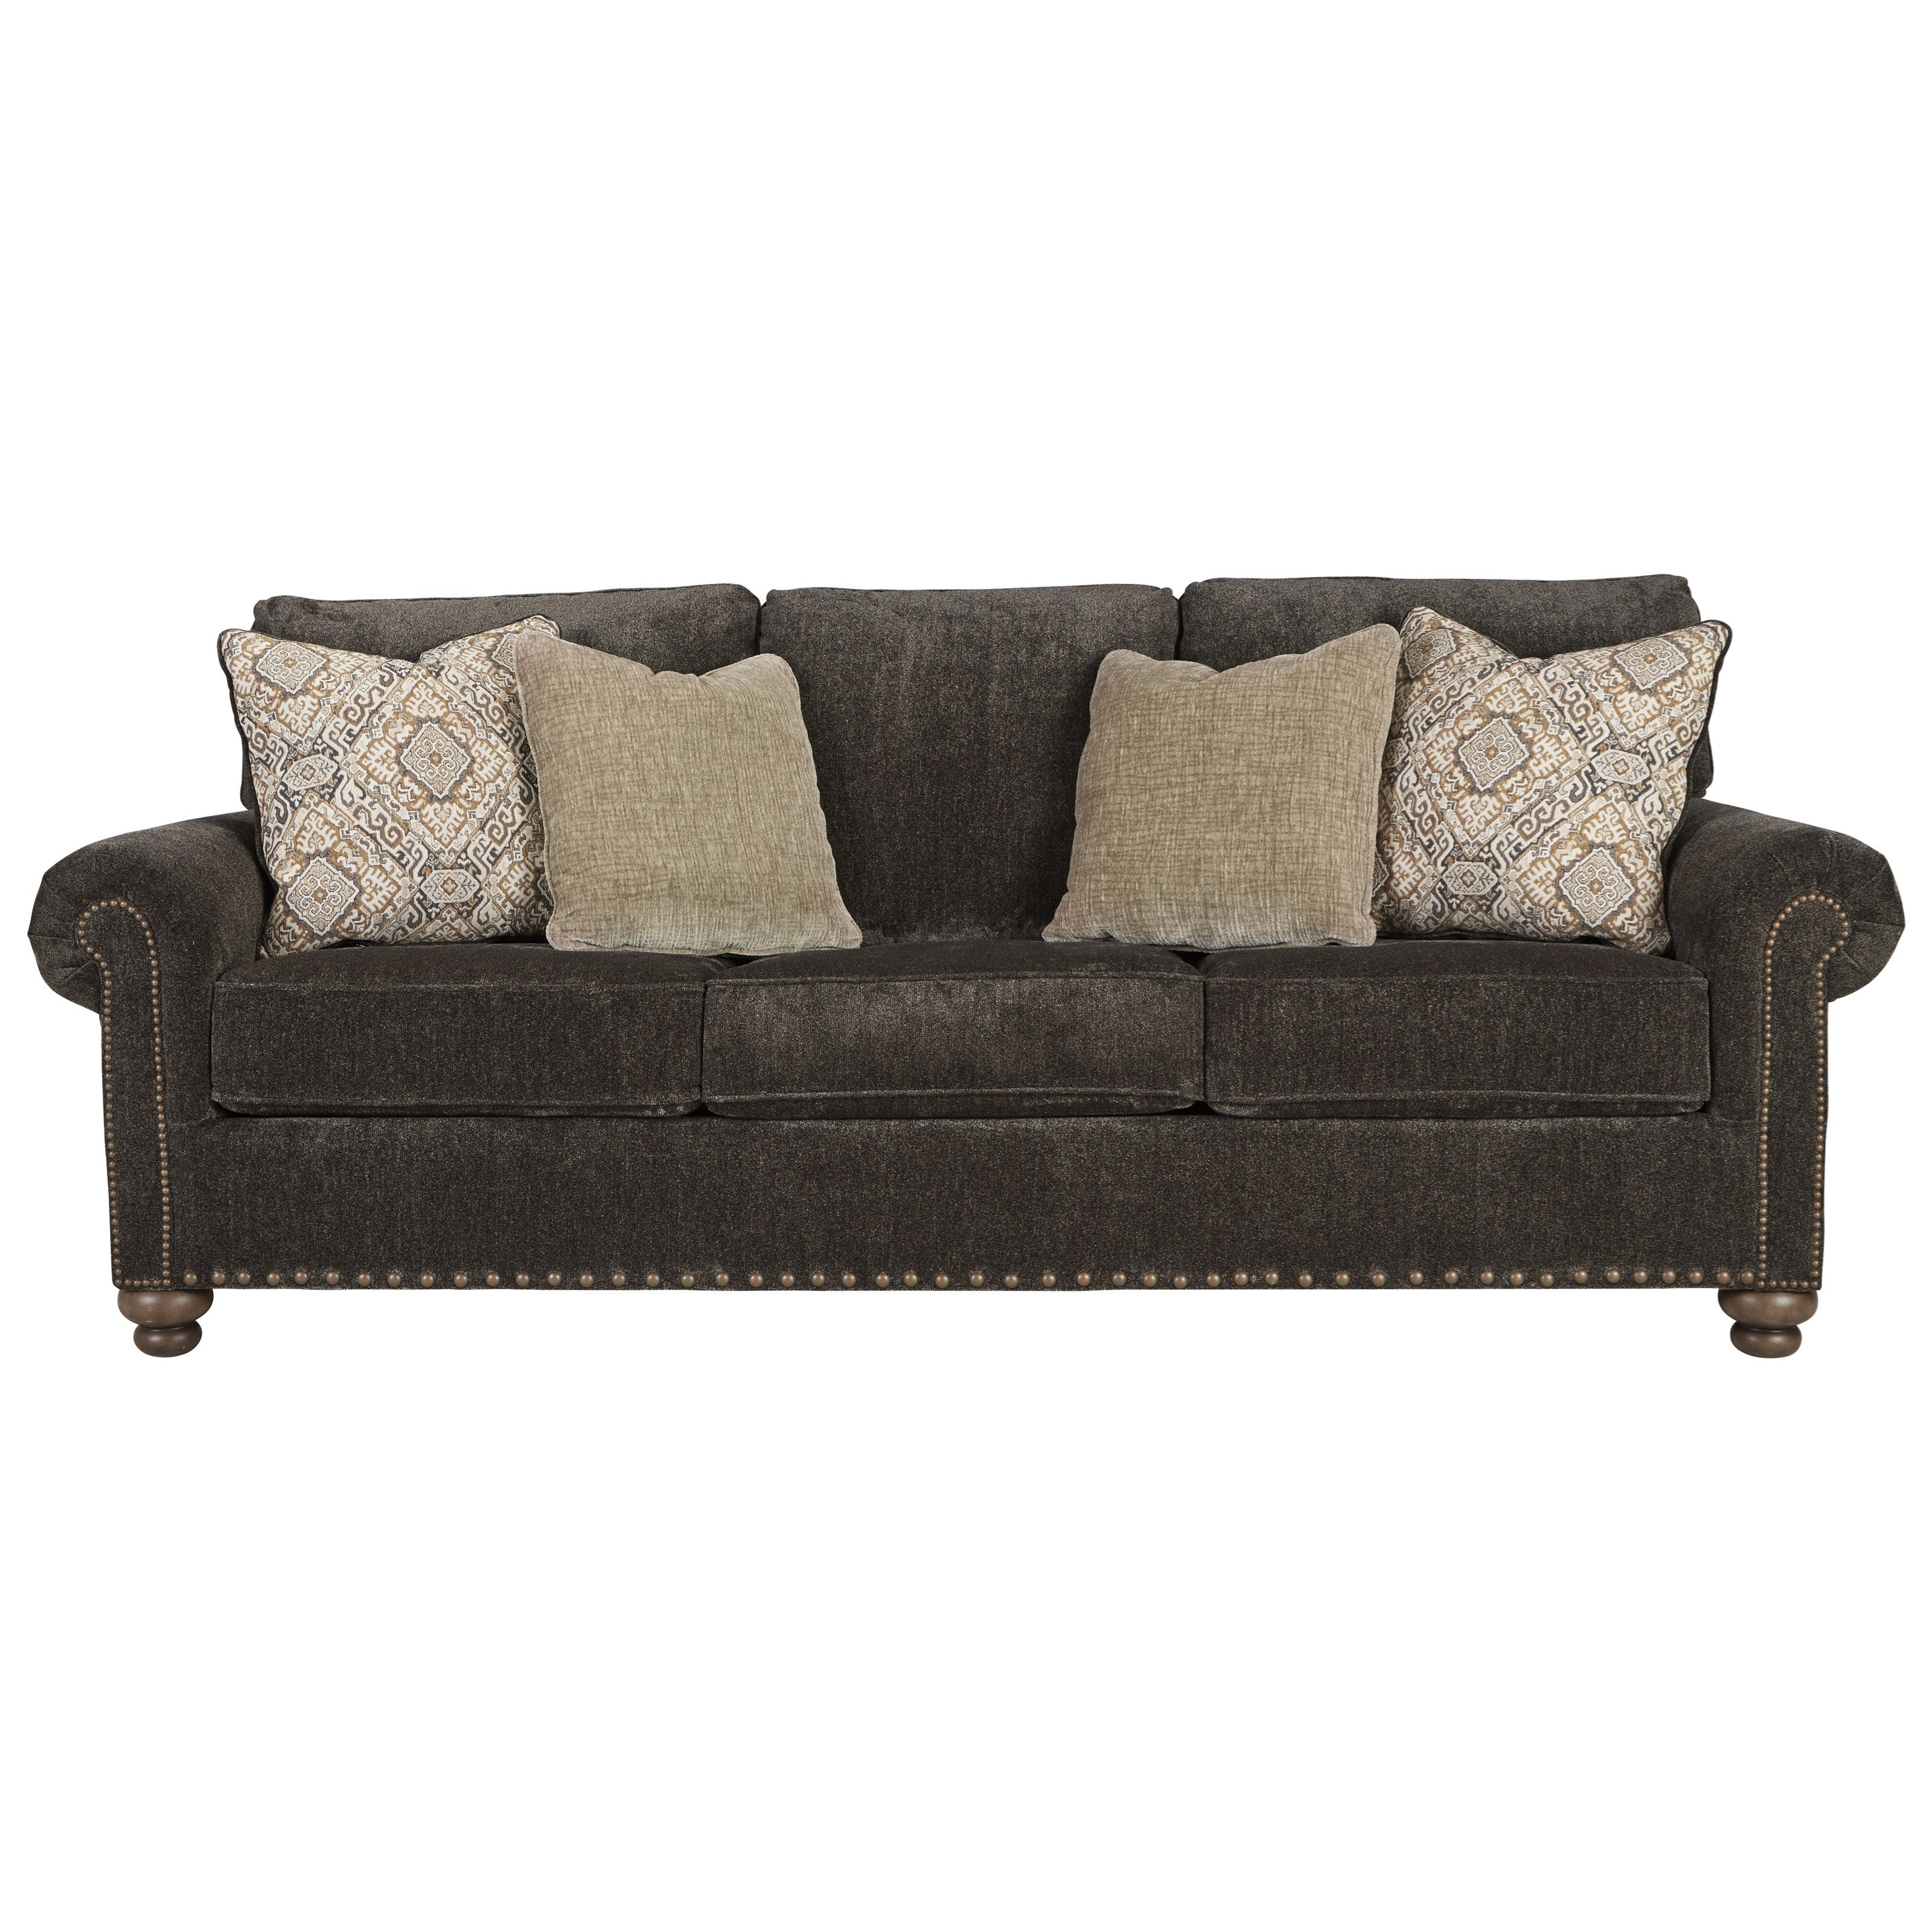 Stracelen Queen Sofa Sleeper by Ashley (Signature Design) at Johnny Janosik